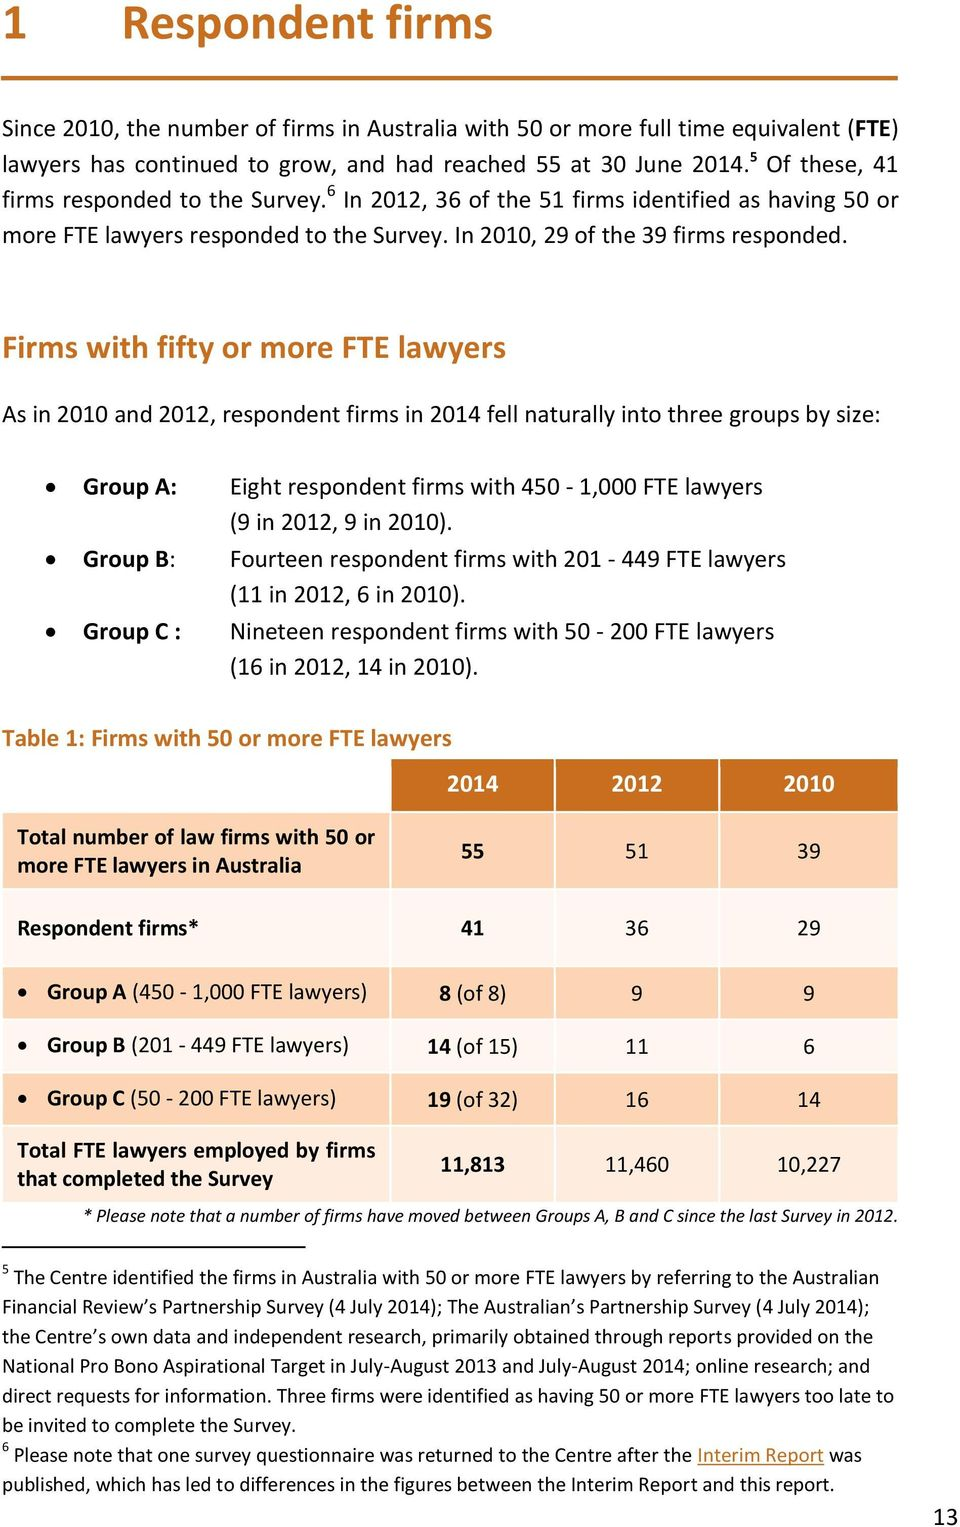 Firms with fifty or more FTE lawyers As in 2010 and 2012, respondent firms in 2014 fell naturally into three groups by size: Group A: Eight respondent firms with 450-1,000 FTE lawyers (9 in 2012, 9